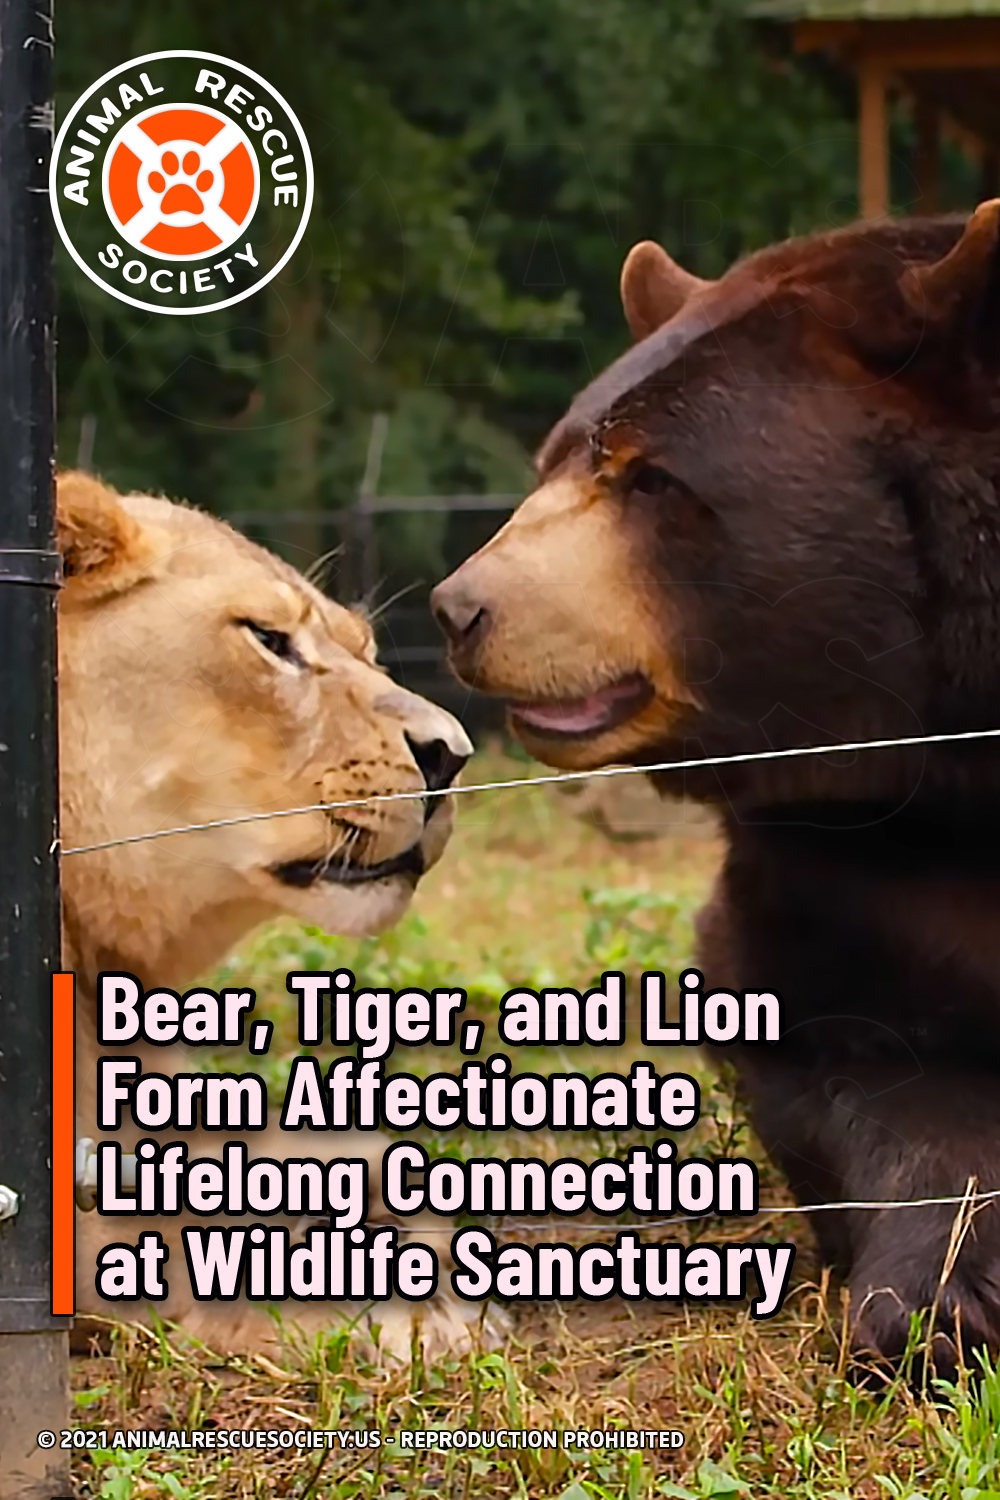 Bear, Tiger, and Lion Form Affectionate Lifelong Connection at Wildlife Sanctuary